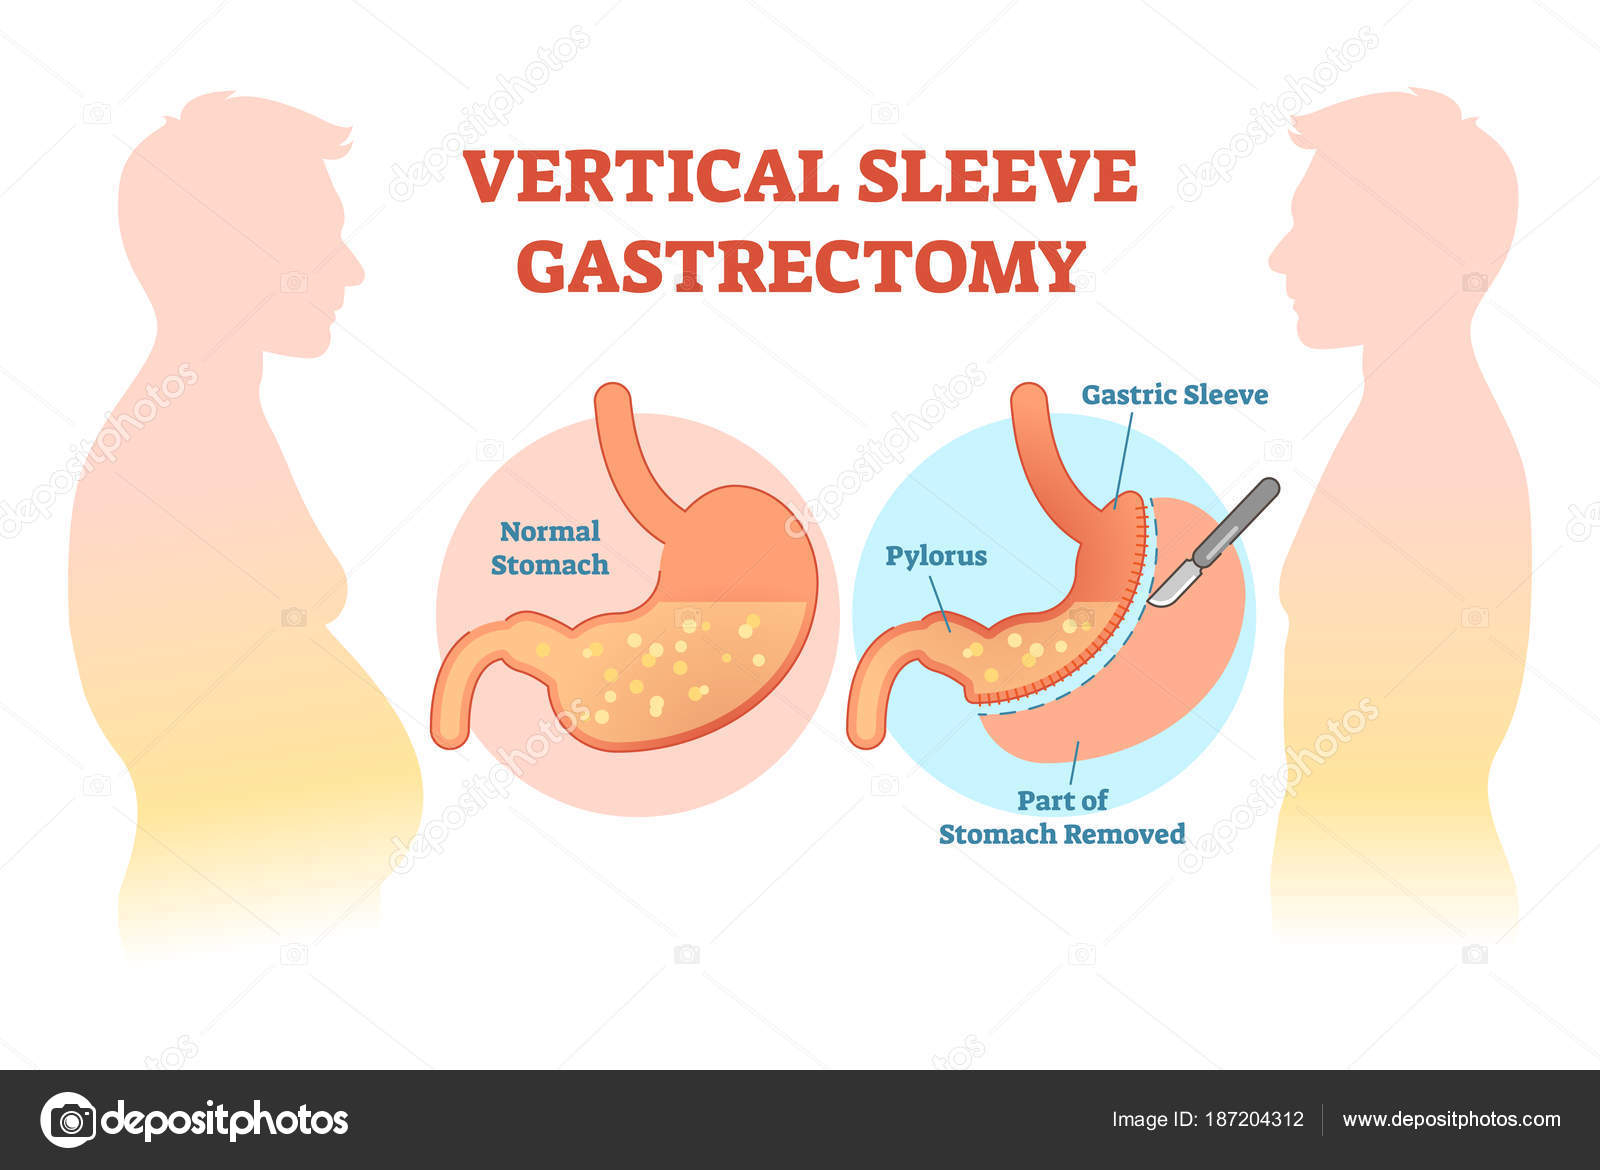 Diagram Of Stomach Vertical Sleeve Gastrectomy Medical Vector Illustration Diagram With